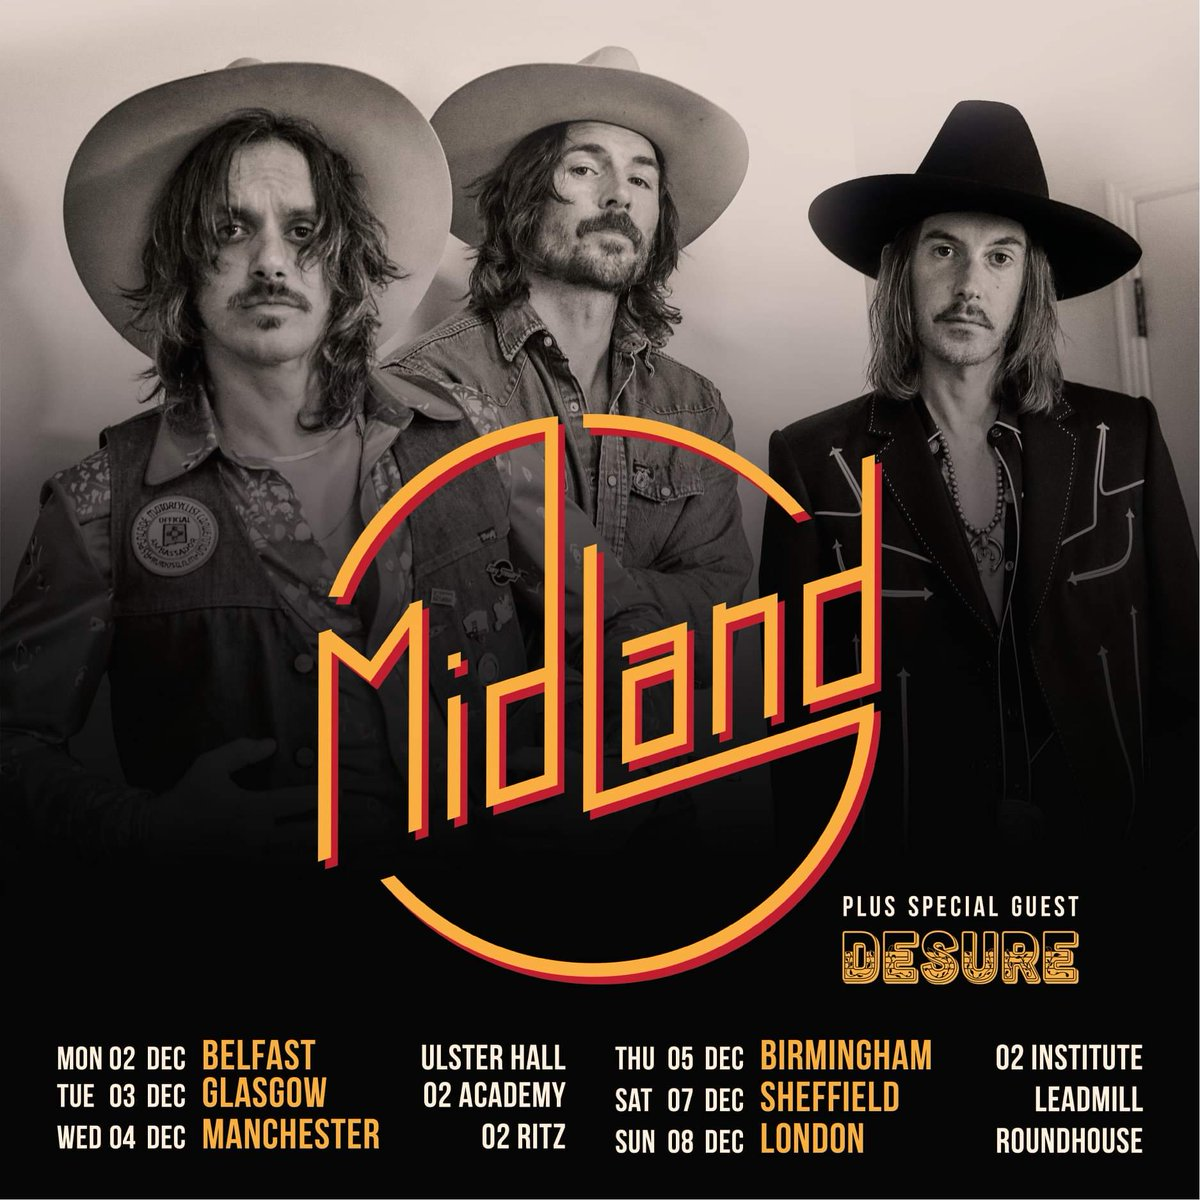 c417cb8b55 Midland are heading back to the UK in December for a headline tour it has  been announced.